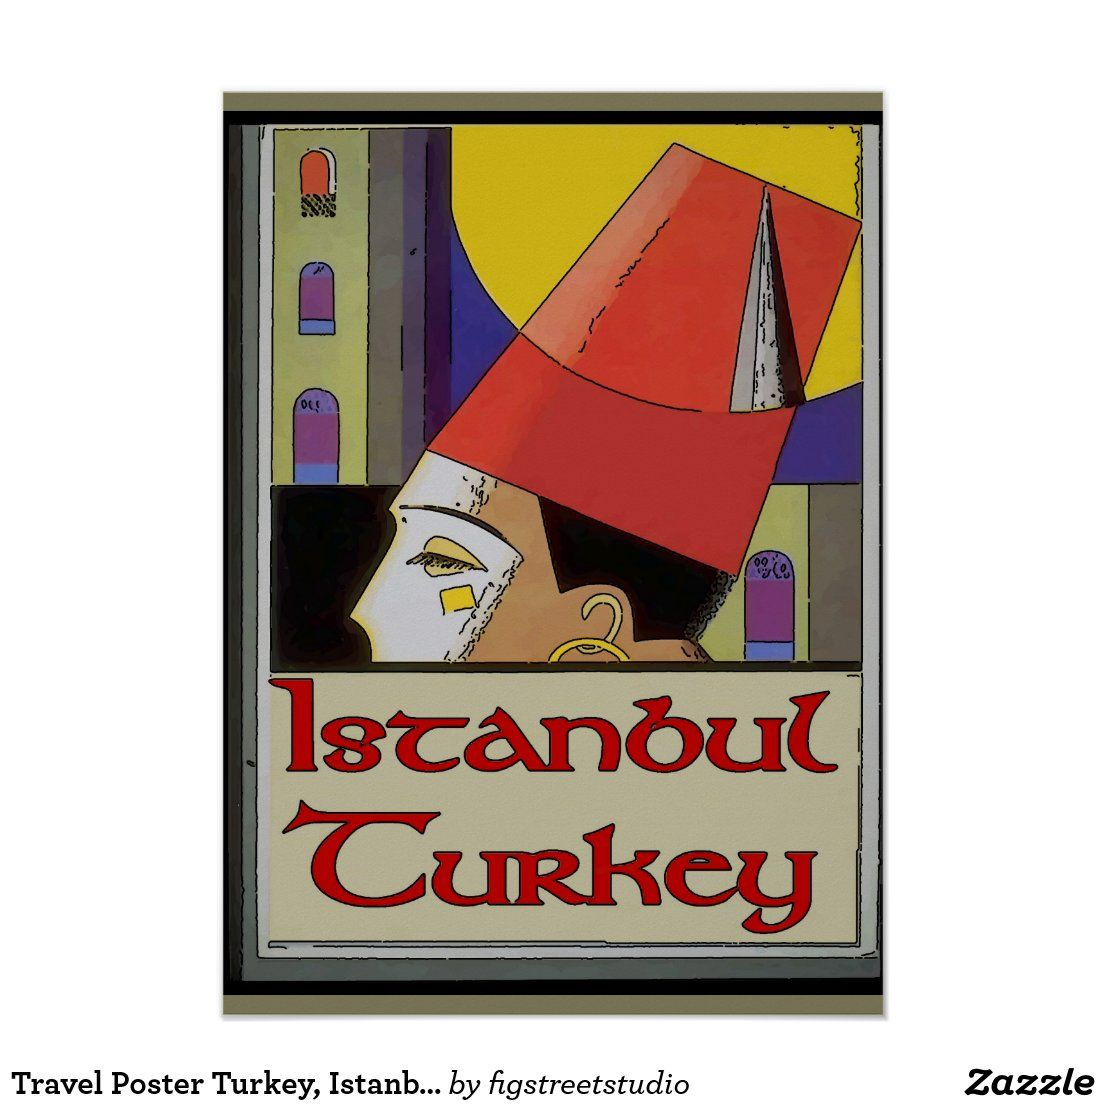 , Travel Poster Turkey, Istanbul, My Travels Blog 2020, My Travels Blog 2020